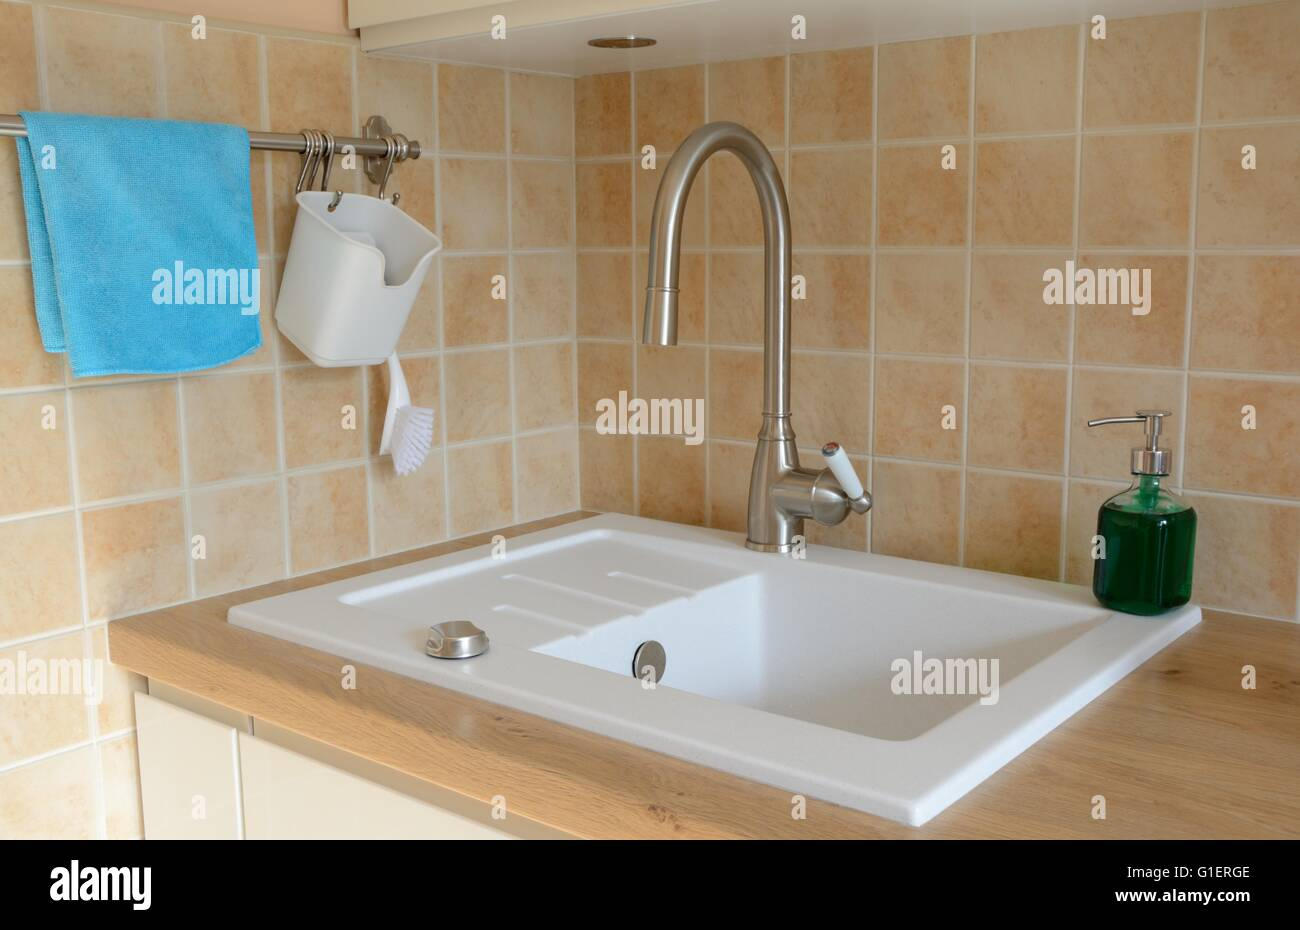 Kitchen sink, tap and other items on brown wooden kitchen counter Stock Photo